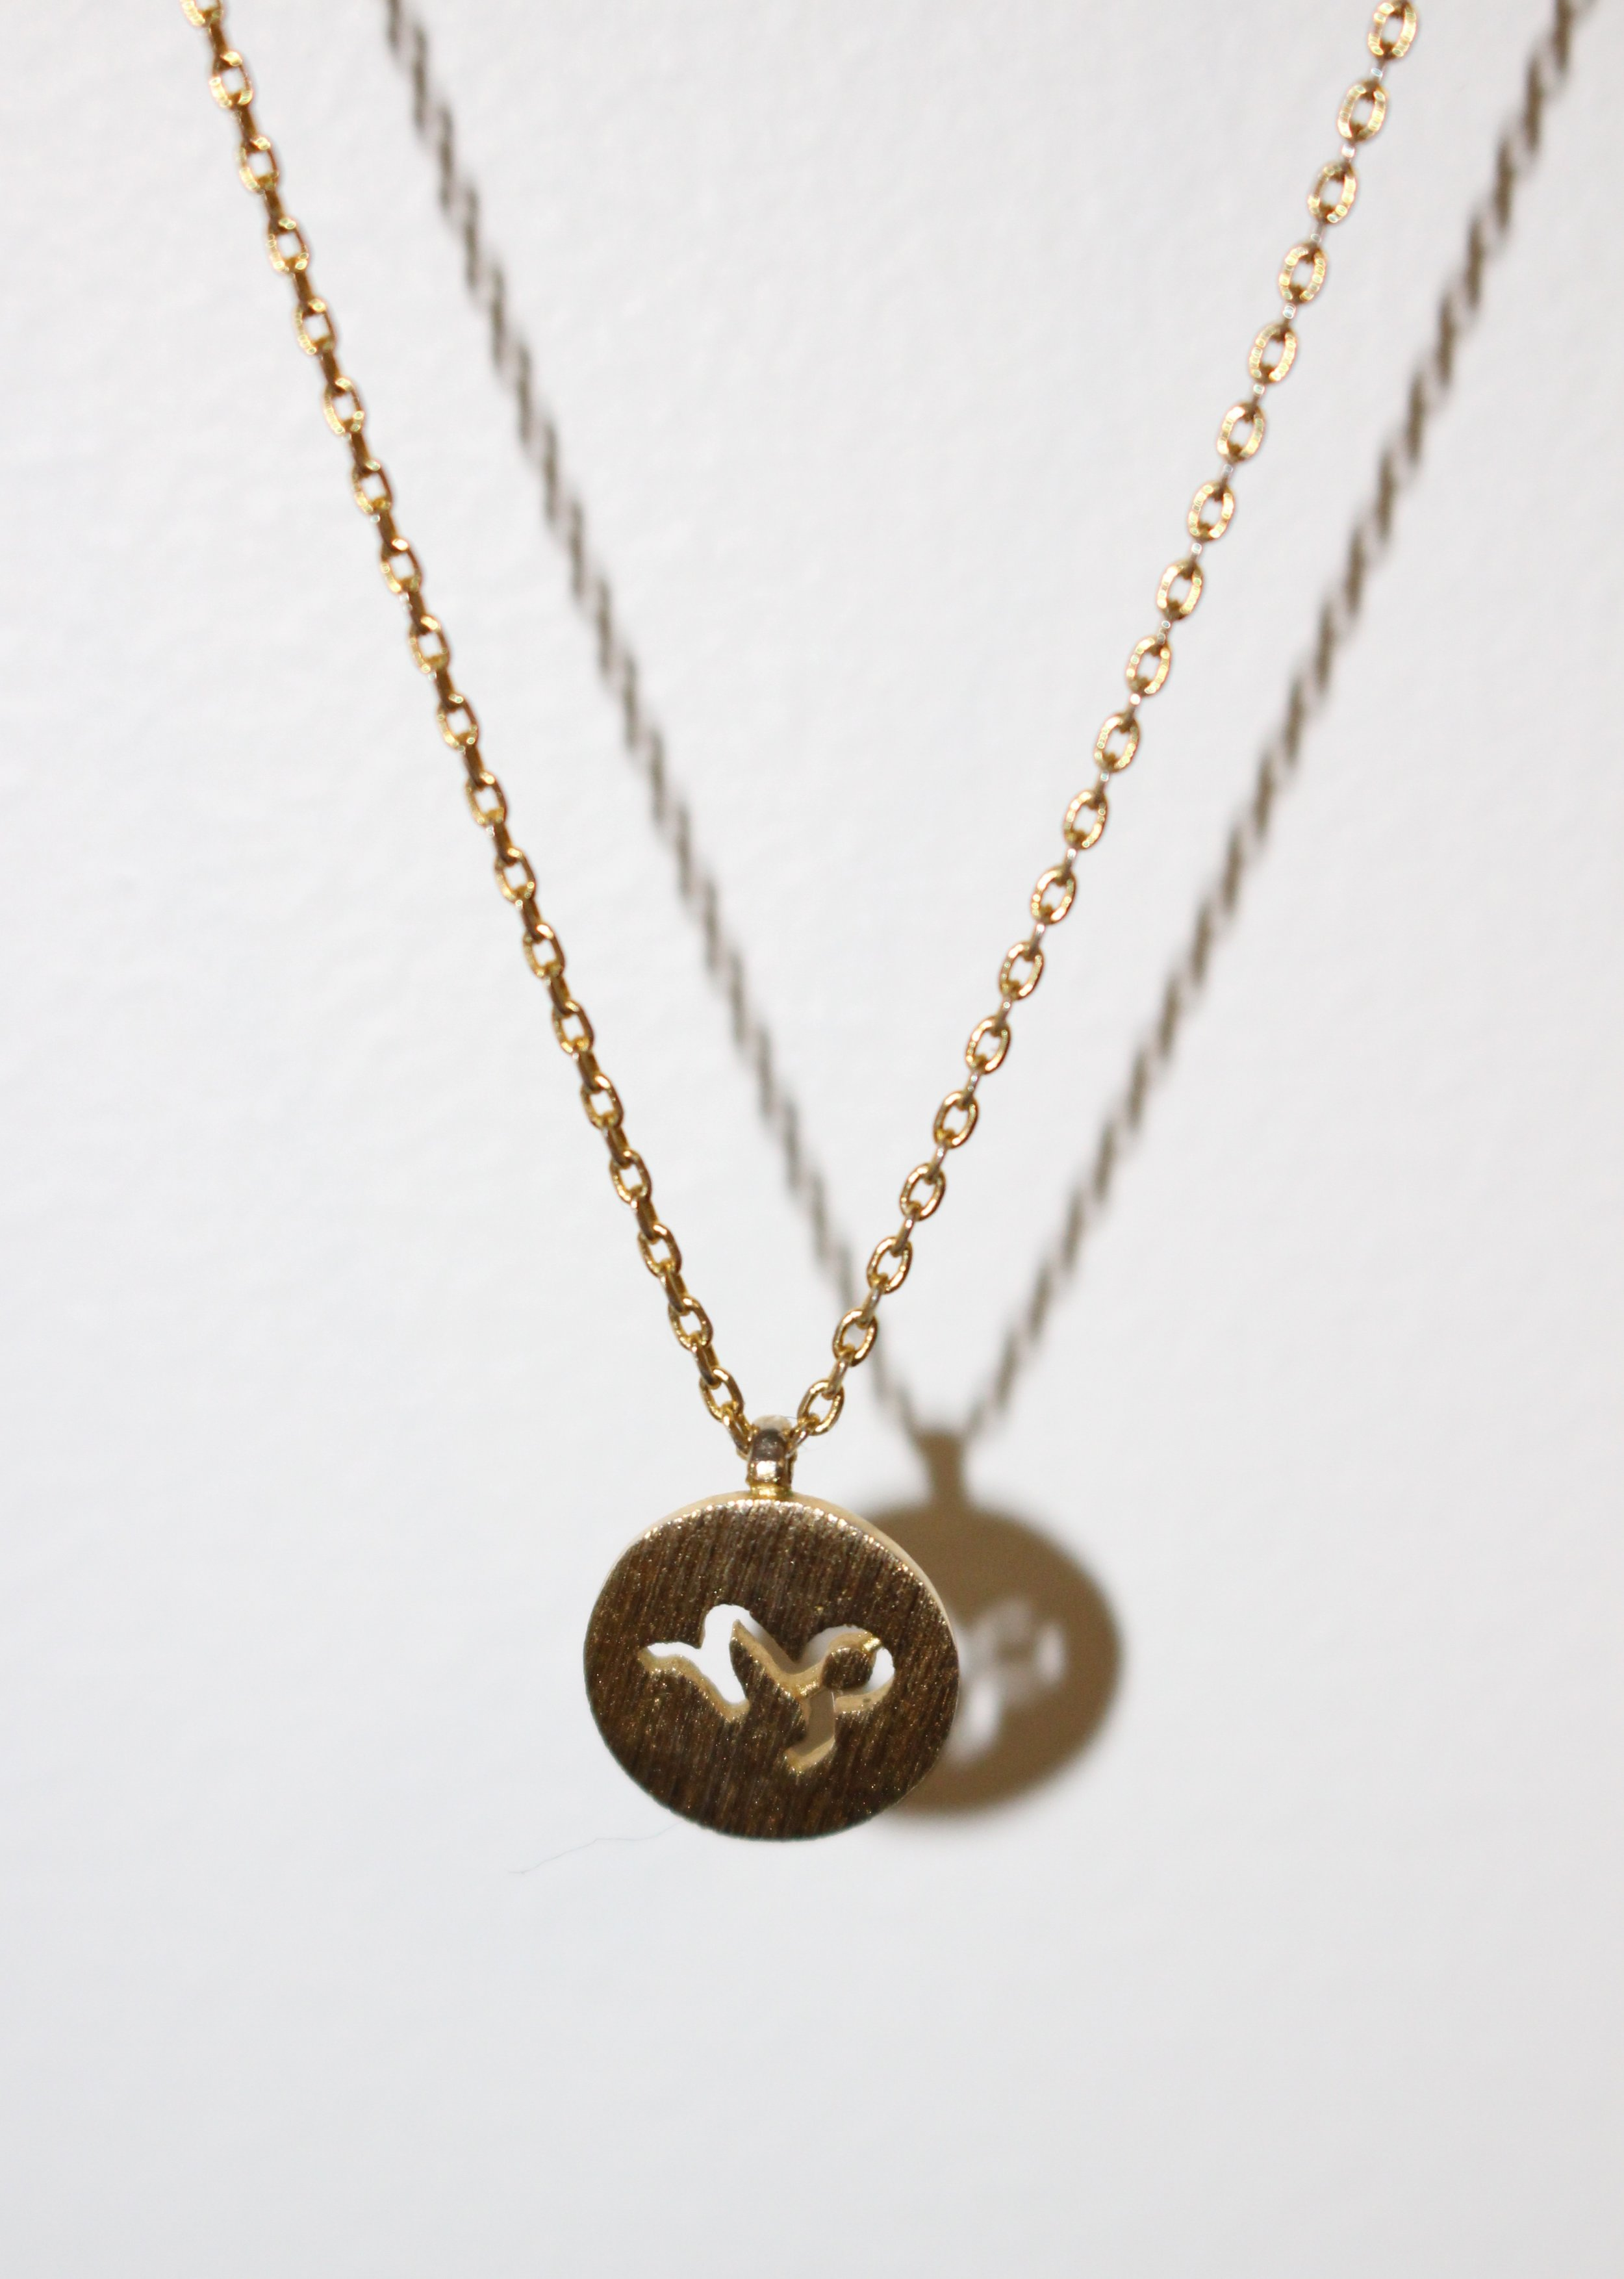 My favourite necklace of the moment